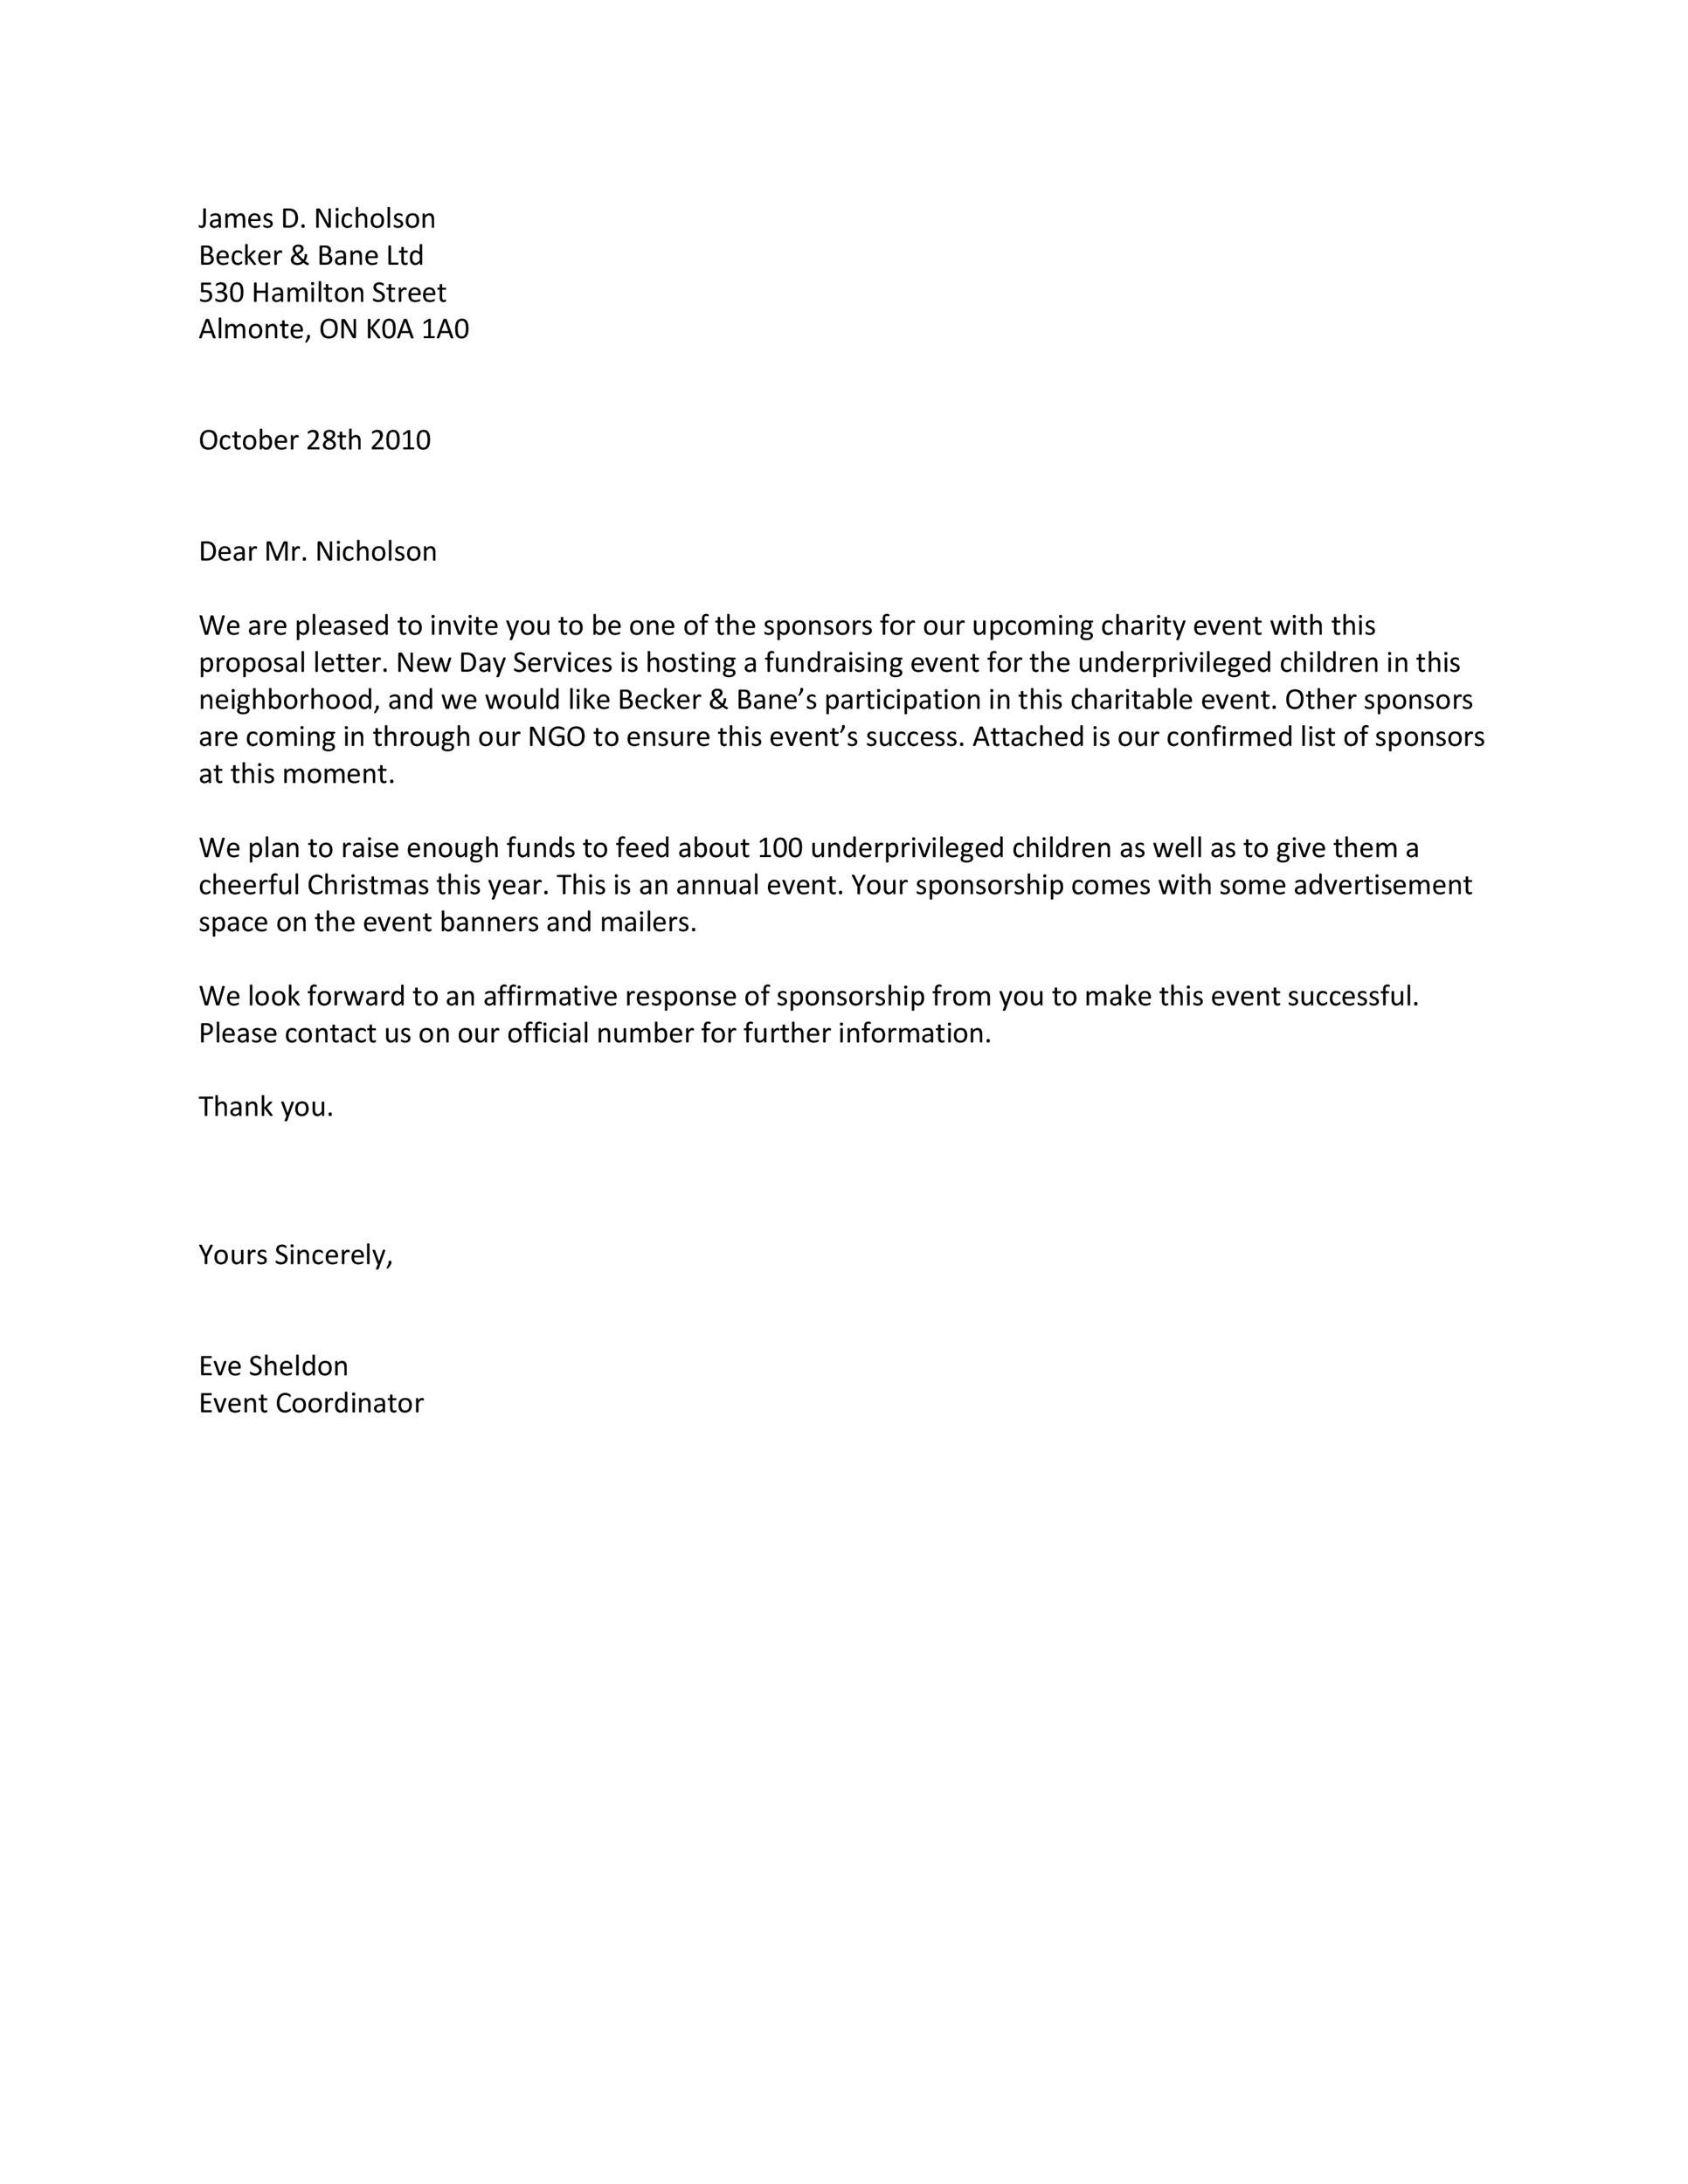 Sample Marketing Proposal Letter from templatelab.com